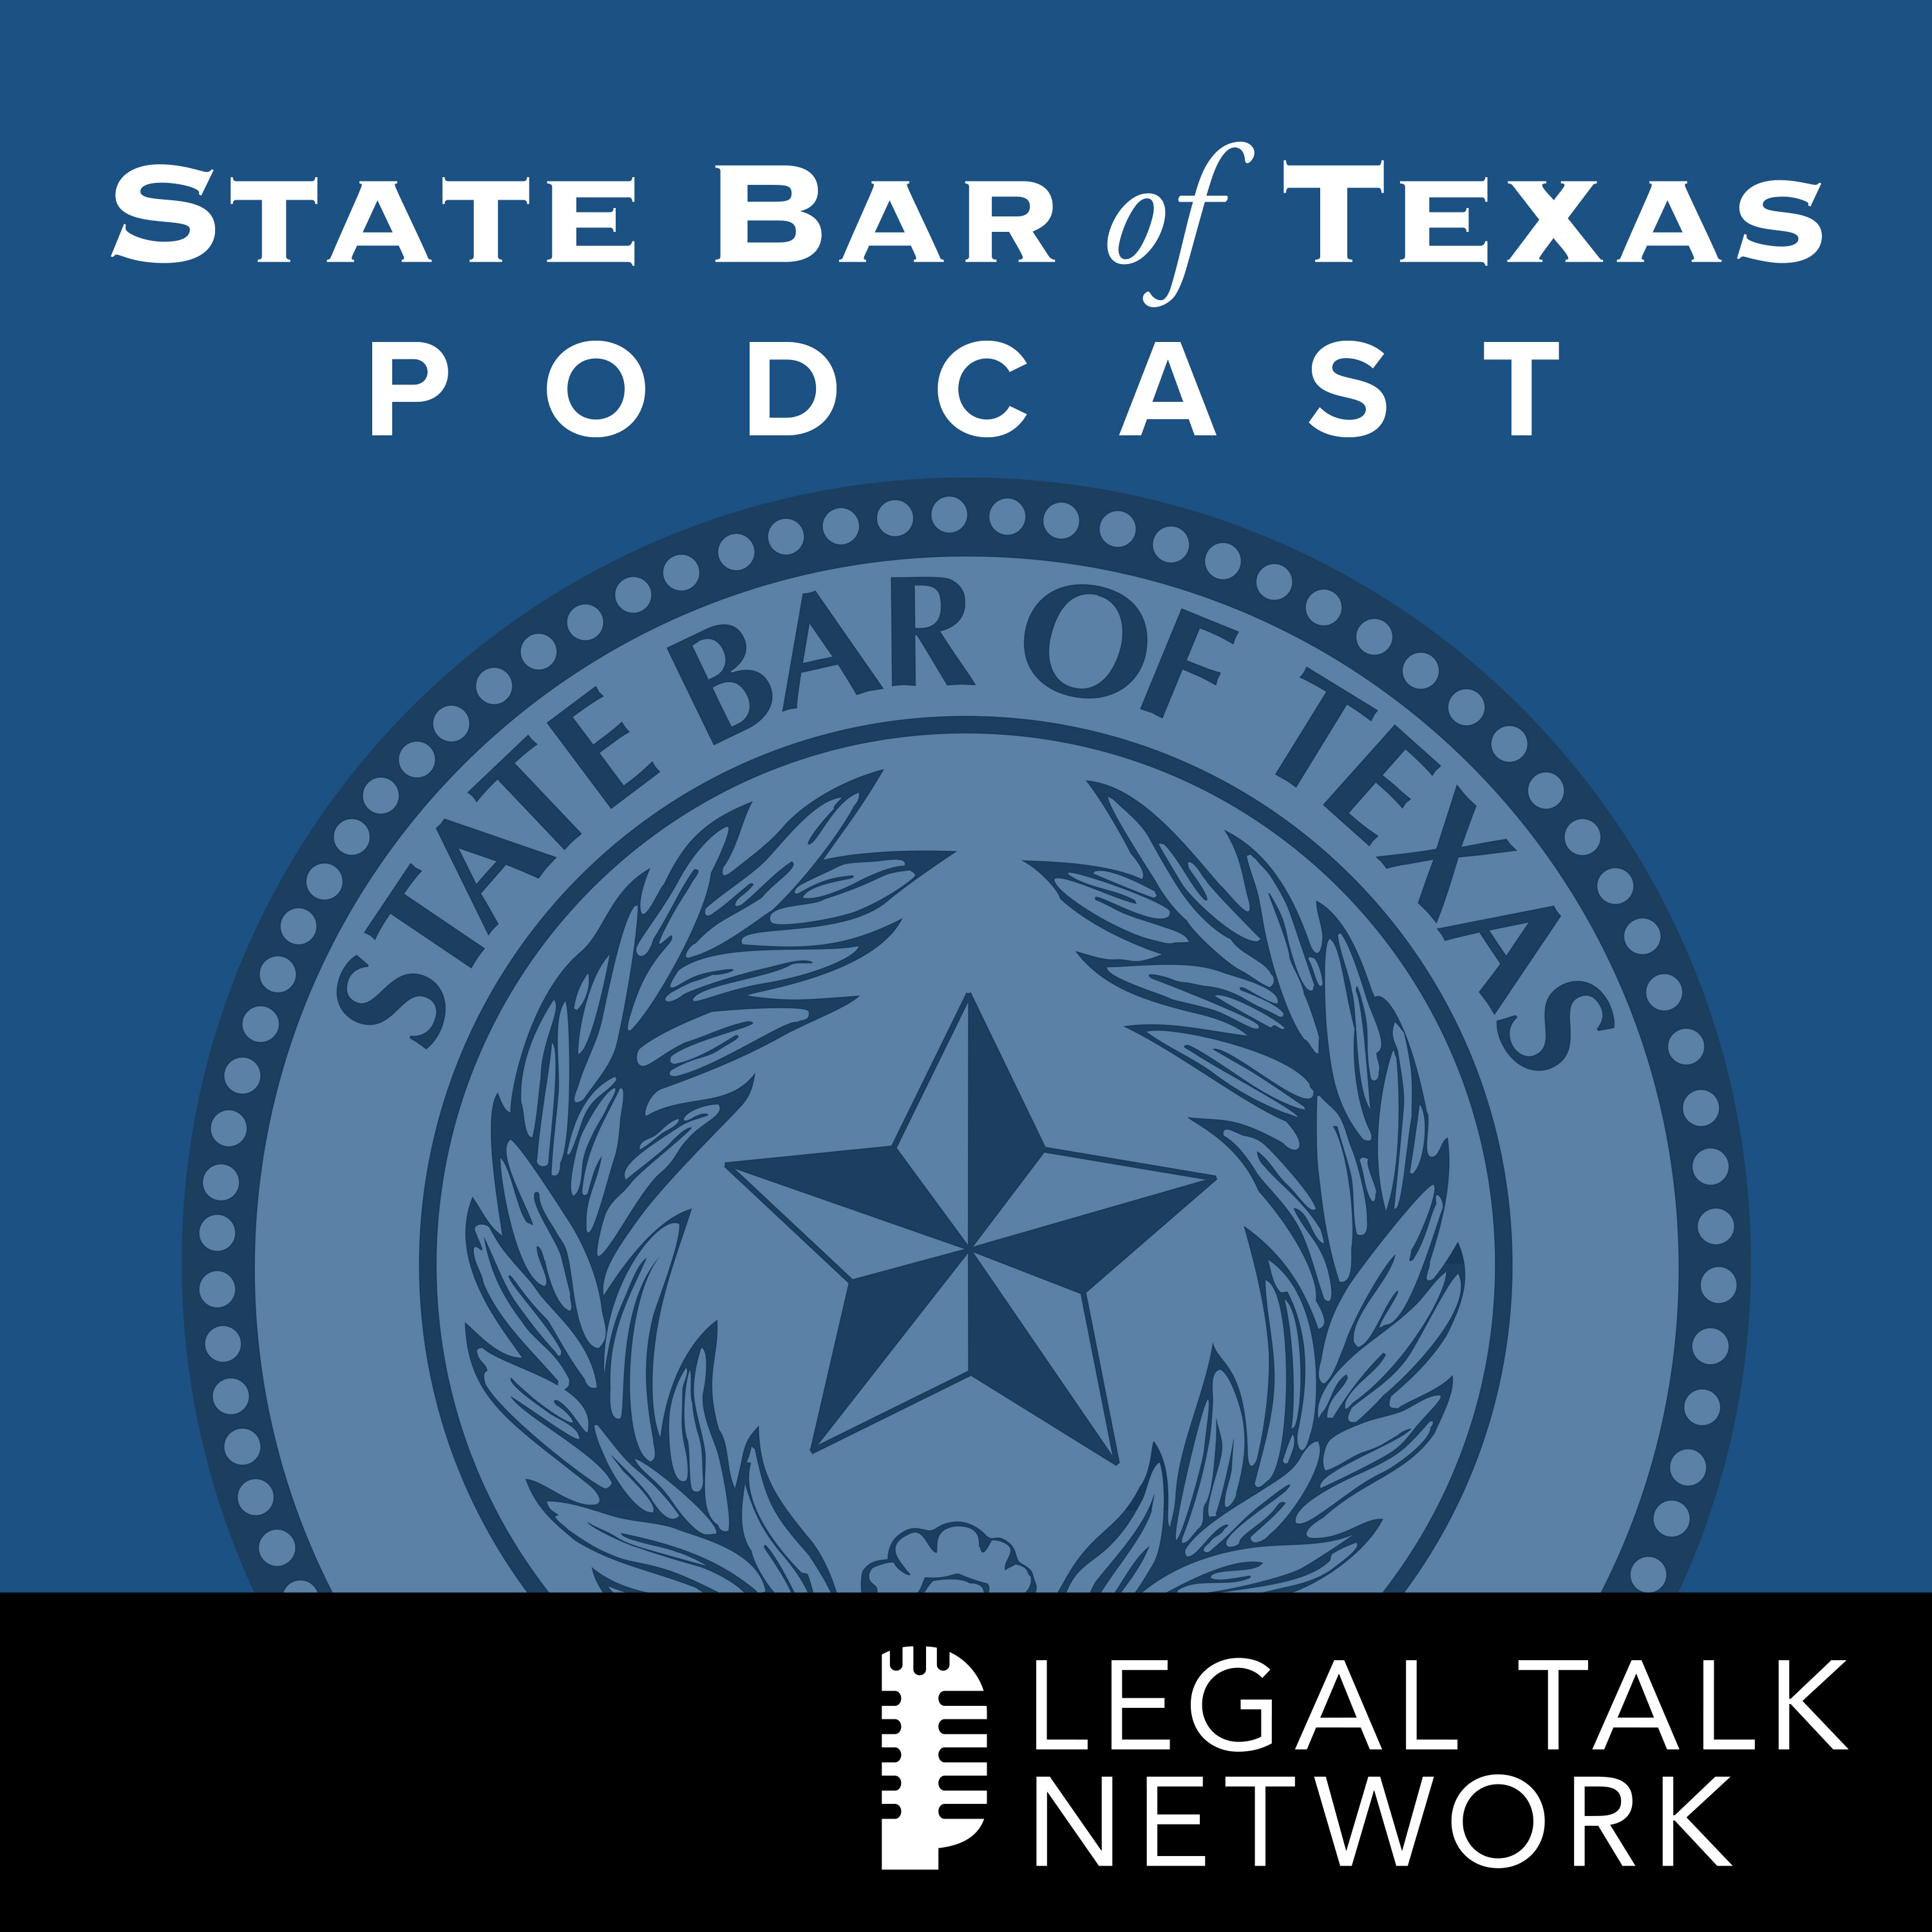 State Bar of Texas Podcast